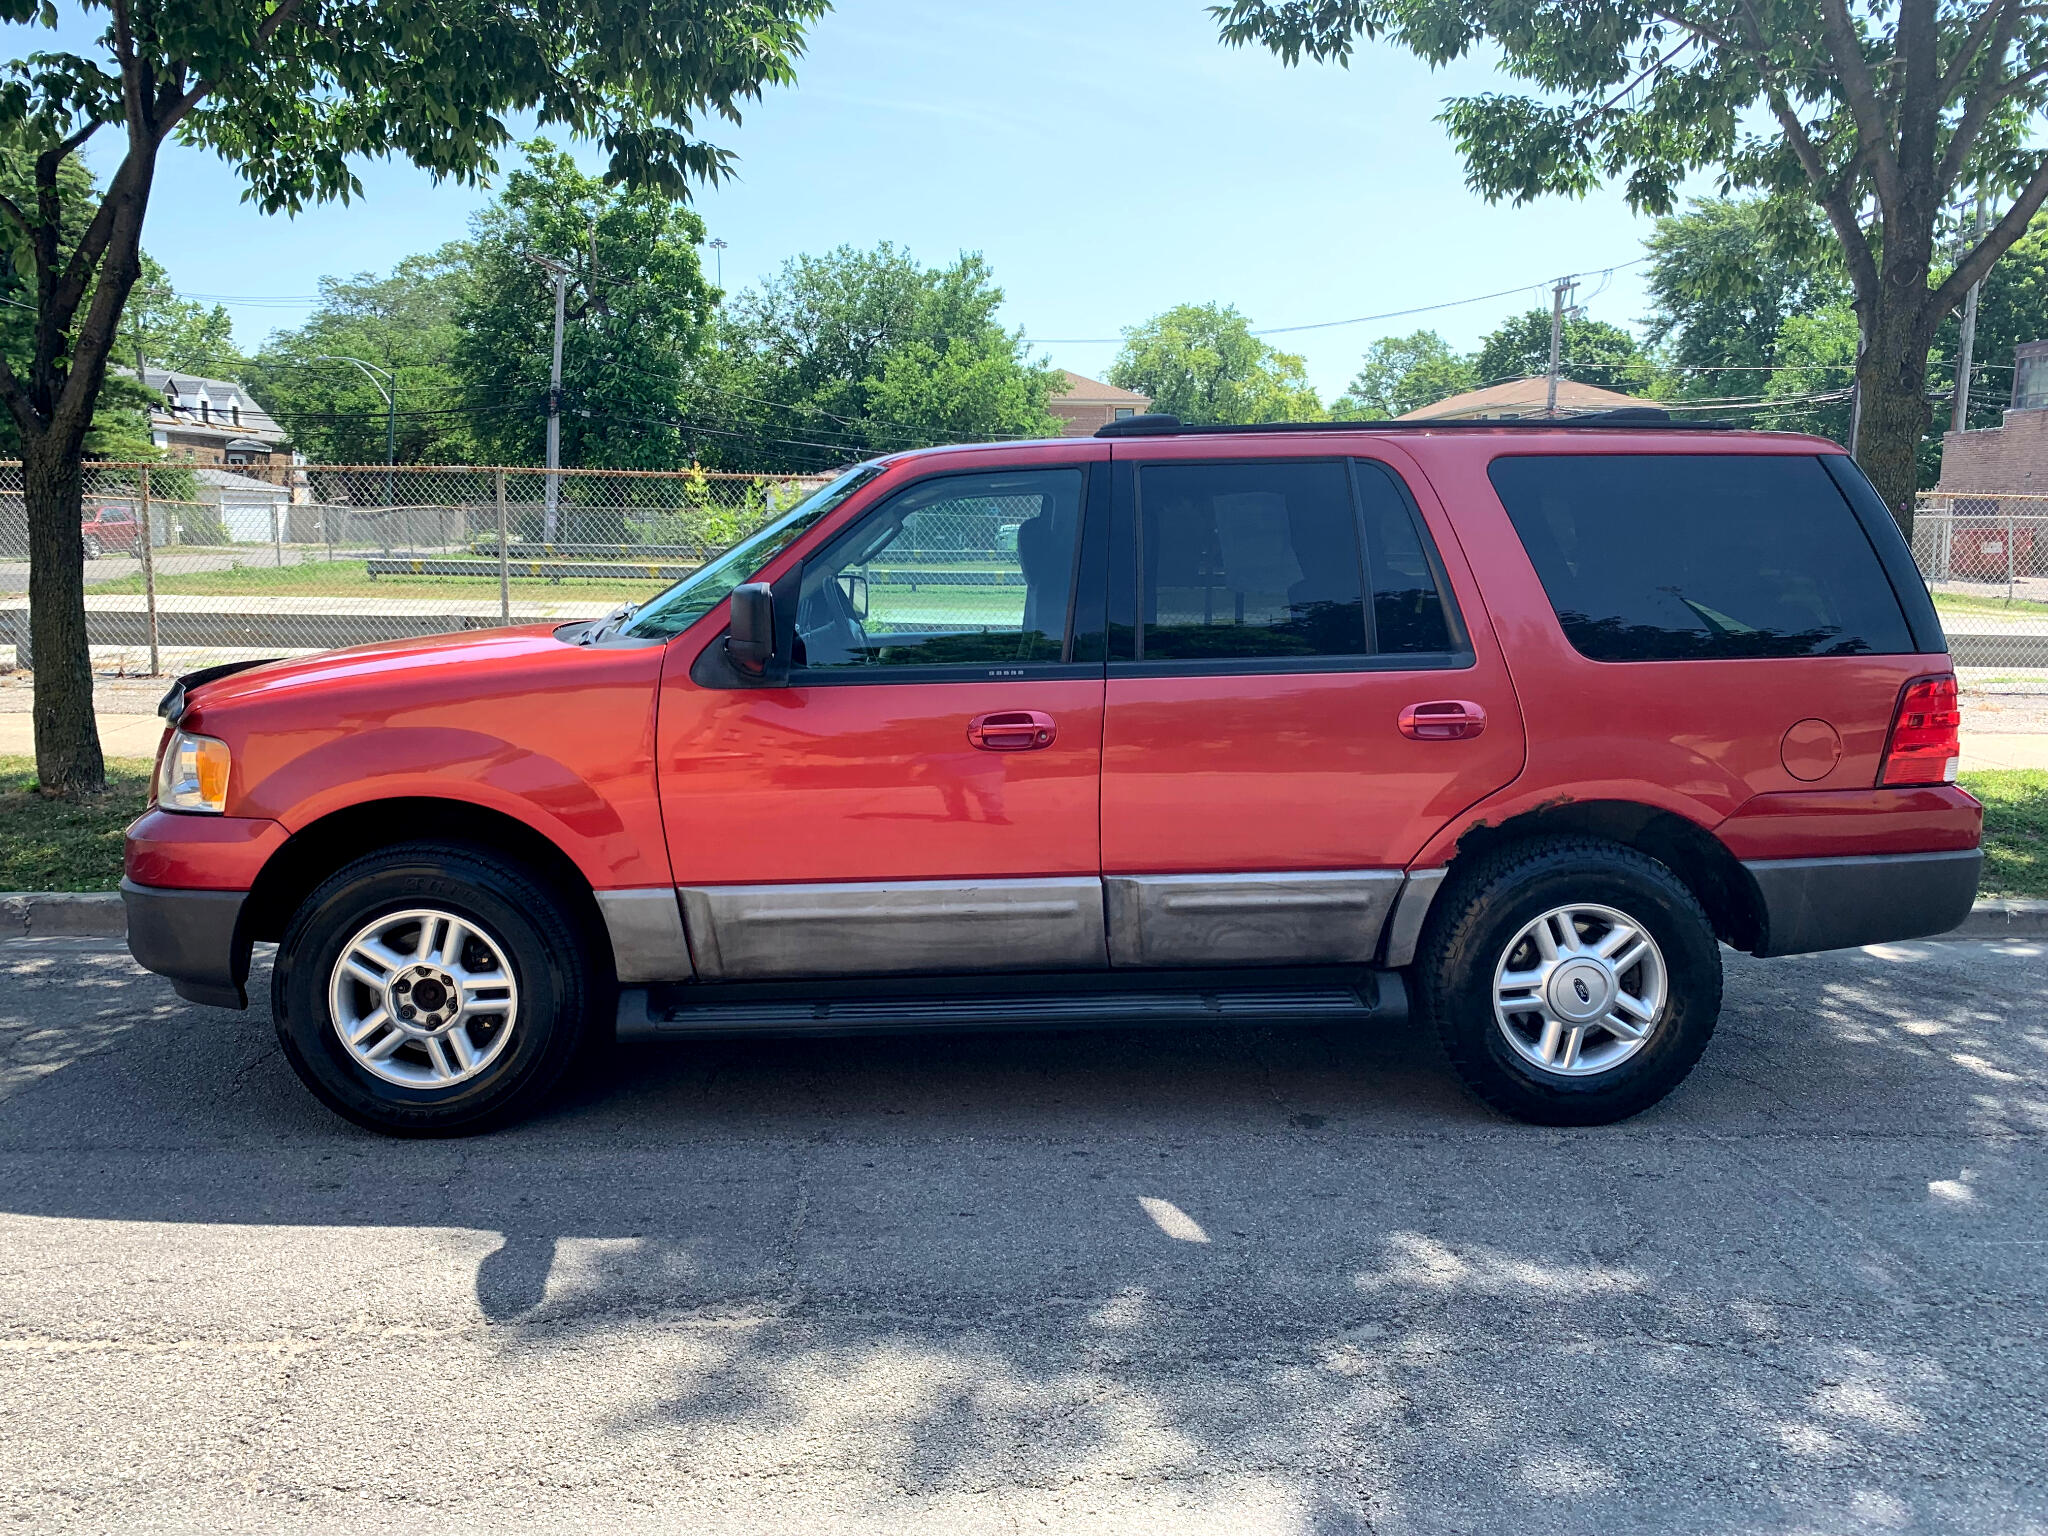 2003 Ford Expedition 5.4L XLT FX4 Off-Road 4WD